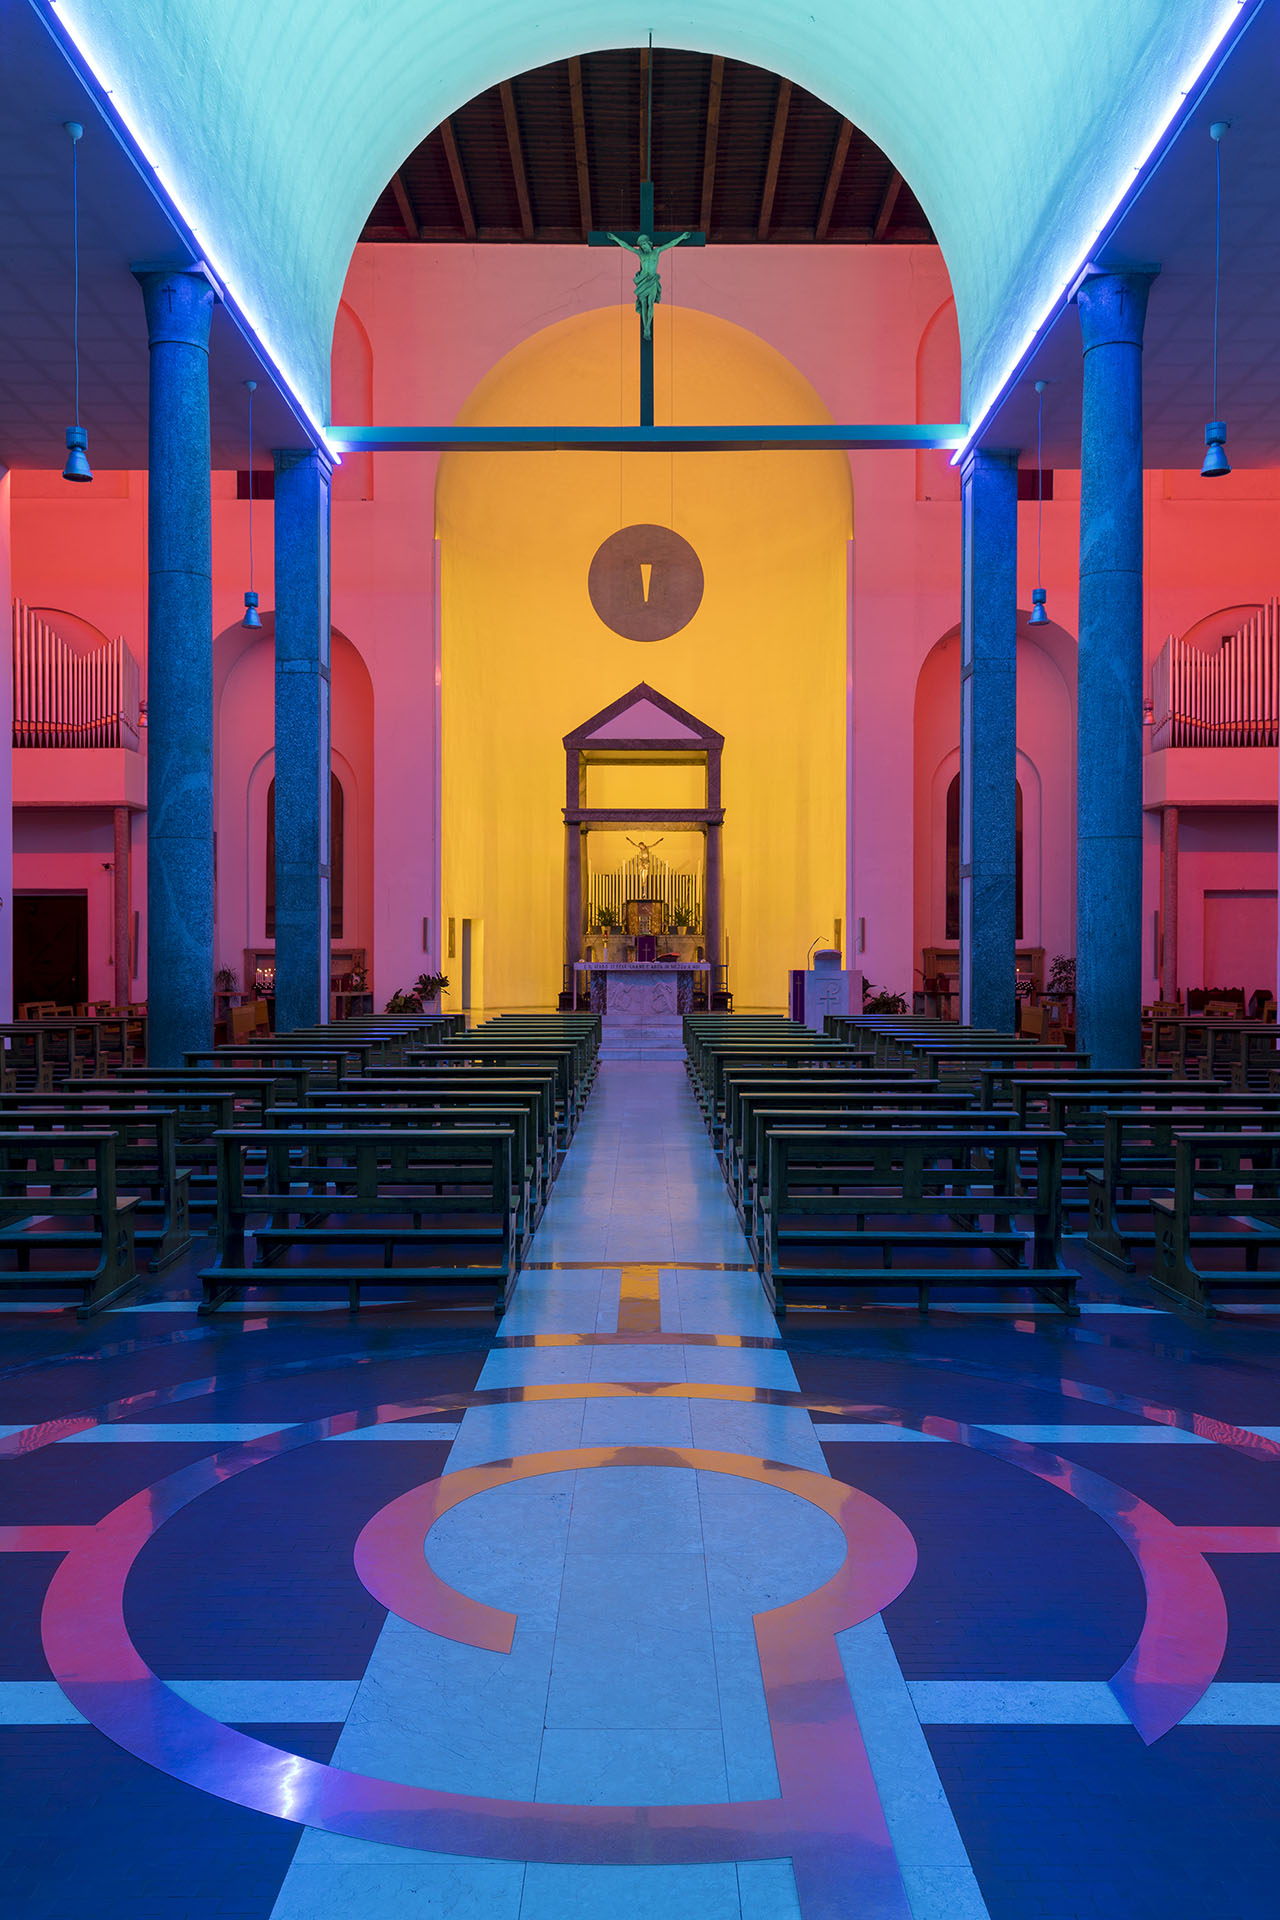 Untitled site-specific permanent installation conceived by Dan Flavin for the Santa Maria Annunciata in Chiesa Rossa, the church in Milan designed by architect Giovanni Muzio in 1930s. Made of green, blue, pink, golden and ultraviolet light, the work suggests the natural 'night-dawn-day' progression of light while walking through the entryway.⠀⠀S.Maria Annunciata in Chiesa Rossa.via Neera, 24, Milan.Open from 4 to 7 pm.⠀ Photo: Roberto Marossi.Courtesy Fondazione Prada.